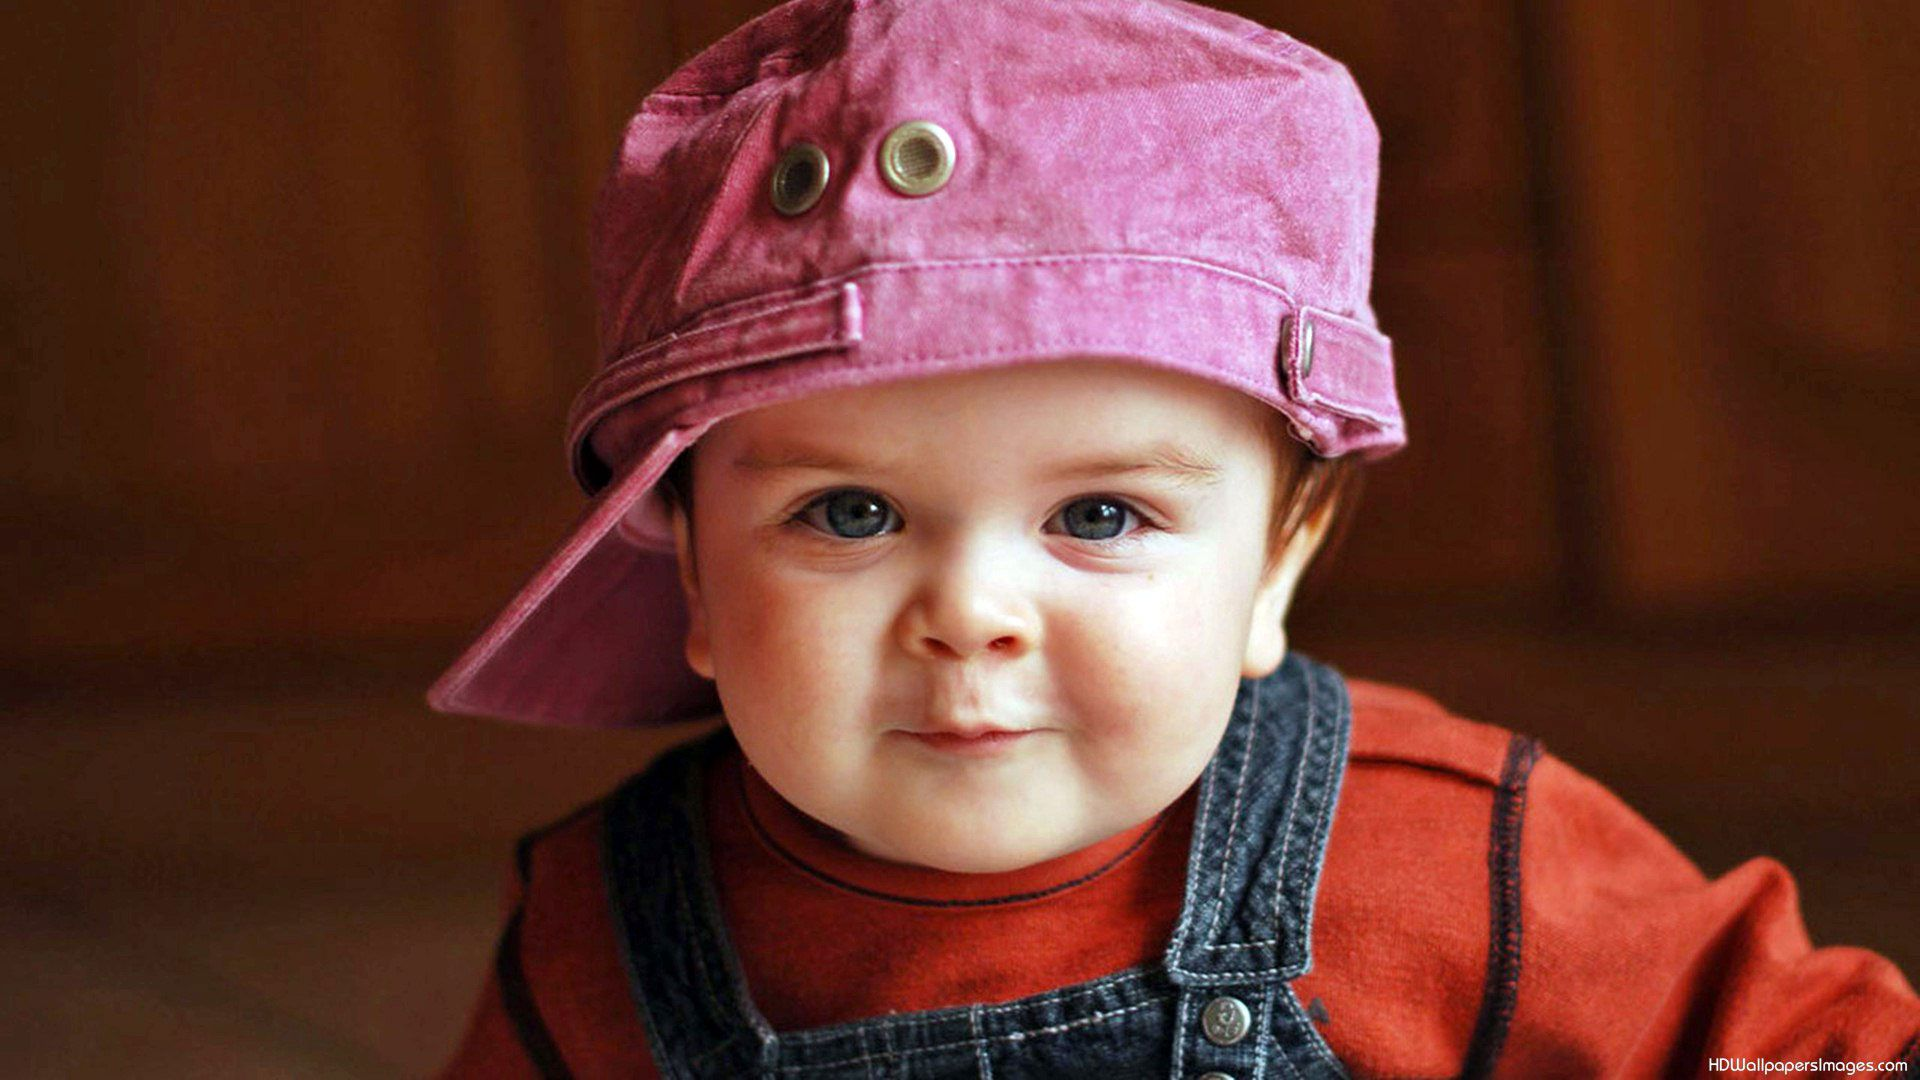 Cute Baby Boys HD Wallpapers Baby Boys HD Pictures HD